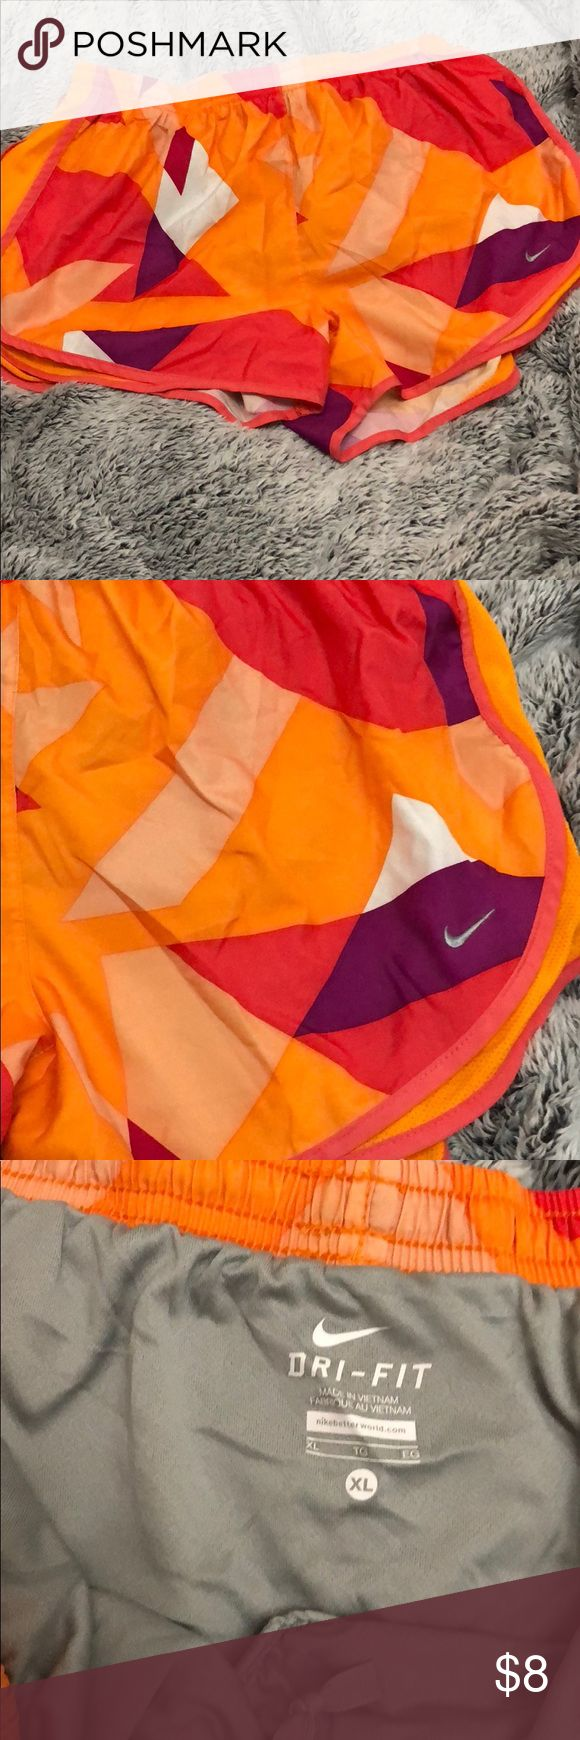 Multicolor Nike women's shorts Orange, purple, pink and white women's Nike shorts Only worn once! Dri-fit Size XL Nike Shorts